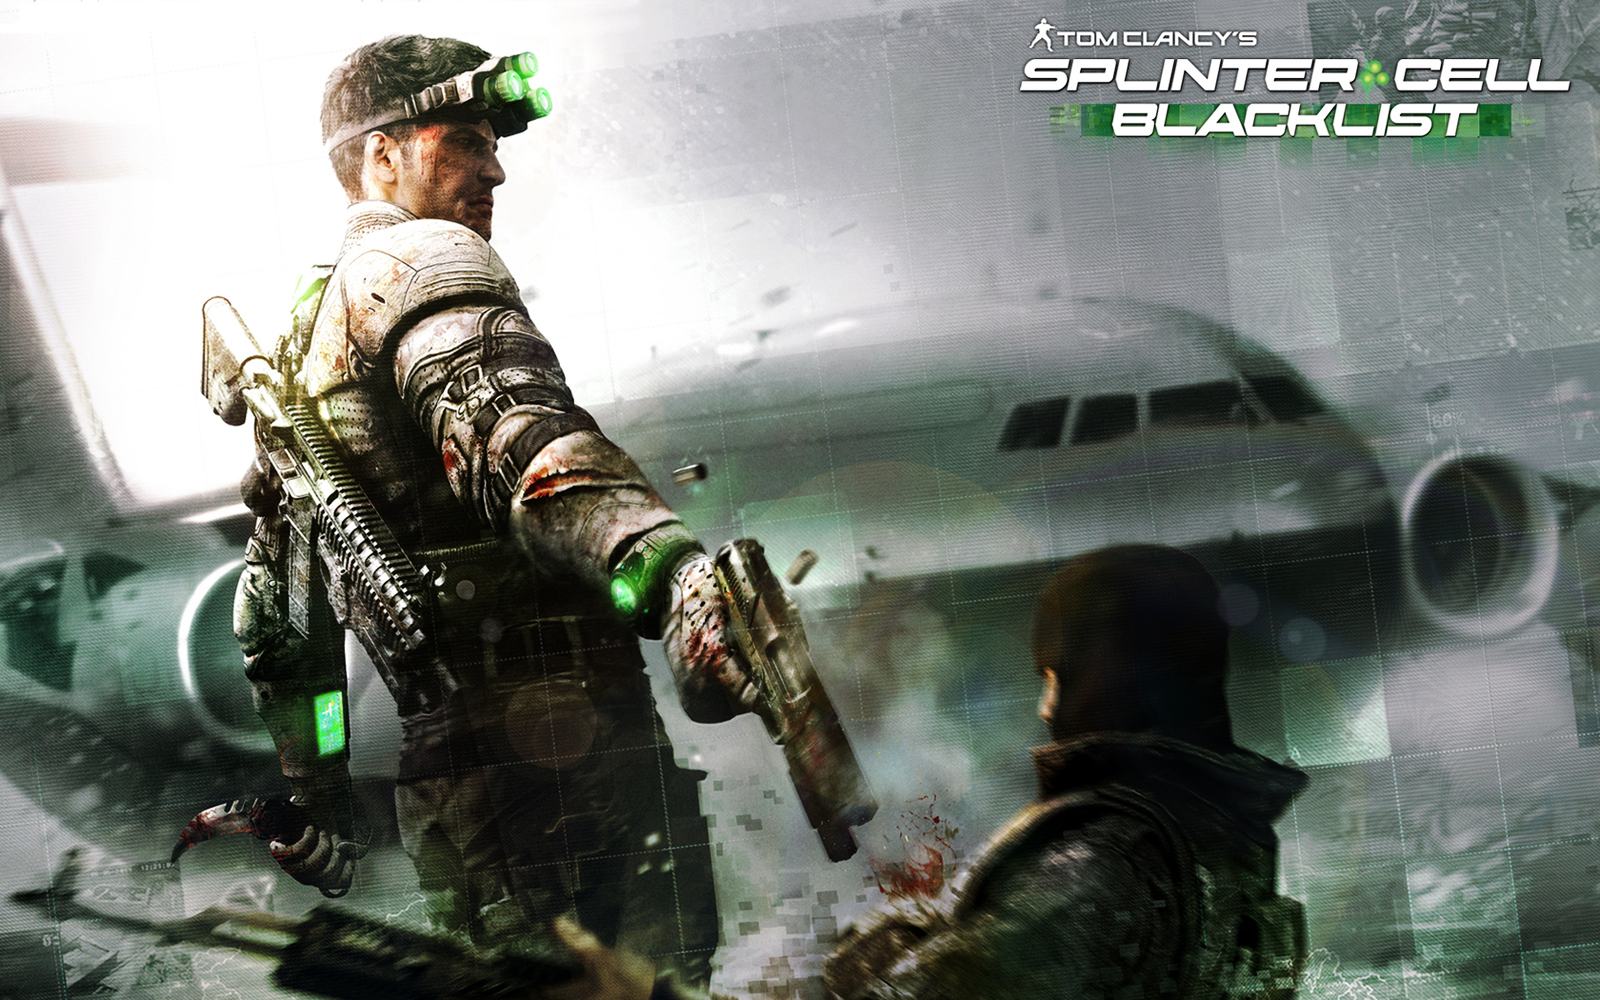 http://1.bp.blogspot.com/-_hsJuI3vAiI/UKdZ2Vz6-xI/AAAAAAAAGJg/dWn00Wqzsq4/s1600/Splinter-Cell-Blacklist-Sam-Fisher-HD-Wallpaper_GameWallBase.Com.jpg